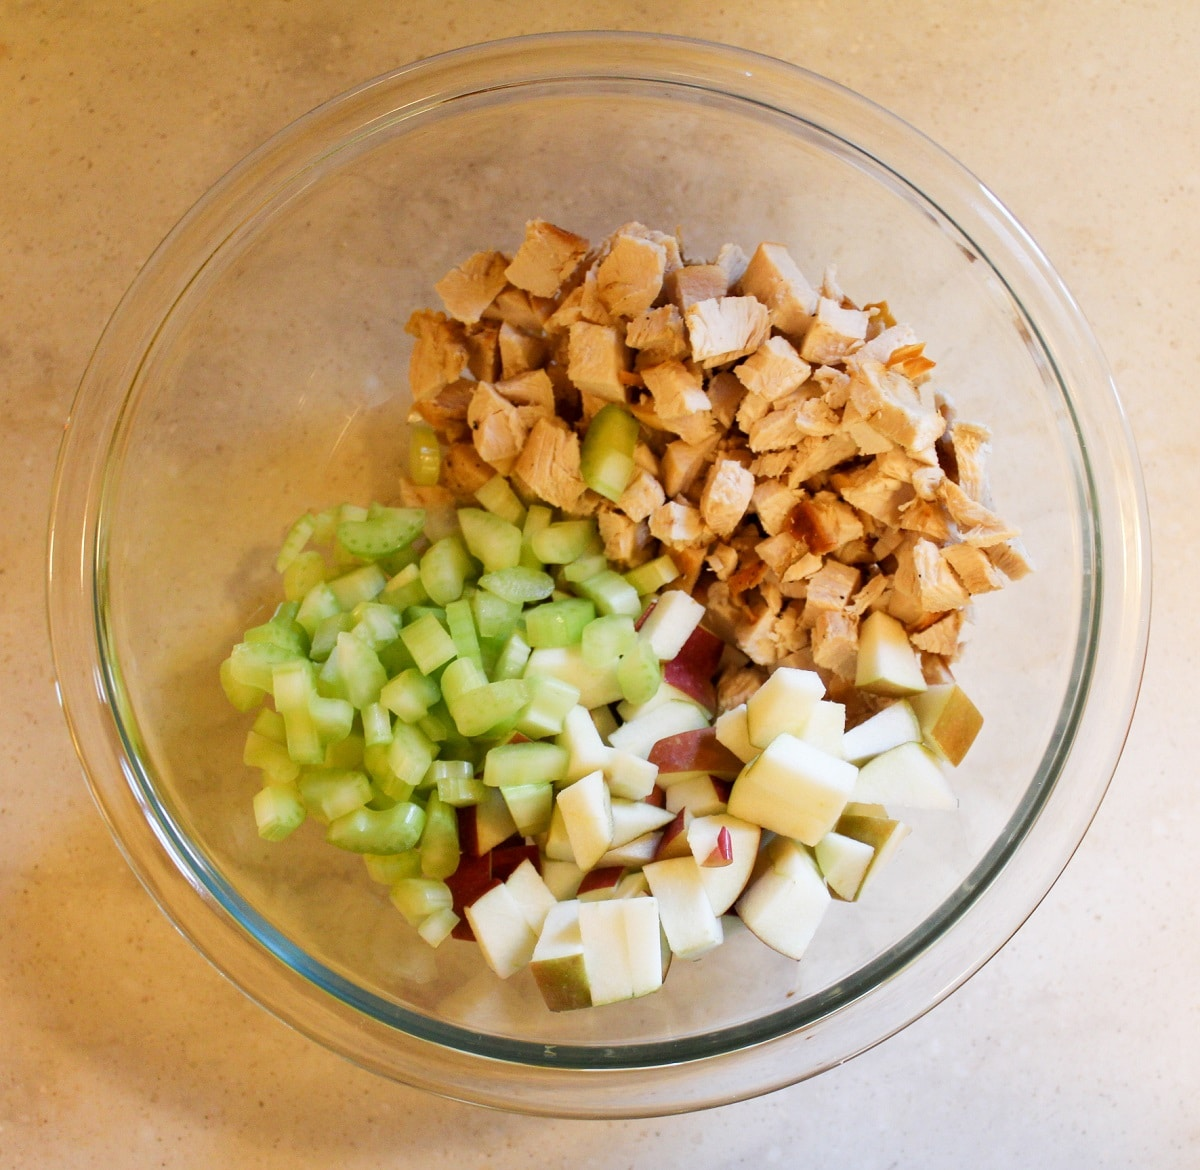 chopped turkey, celery, and apple in a bowl